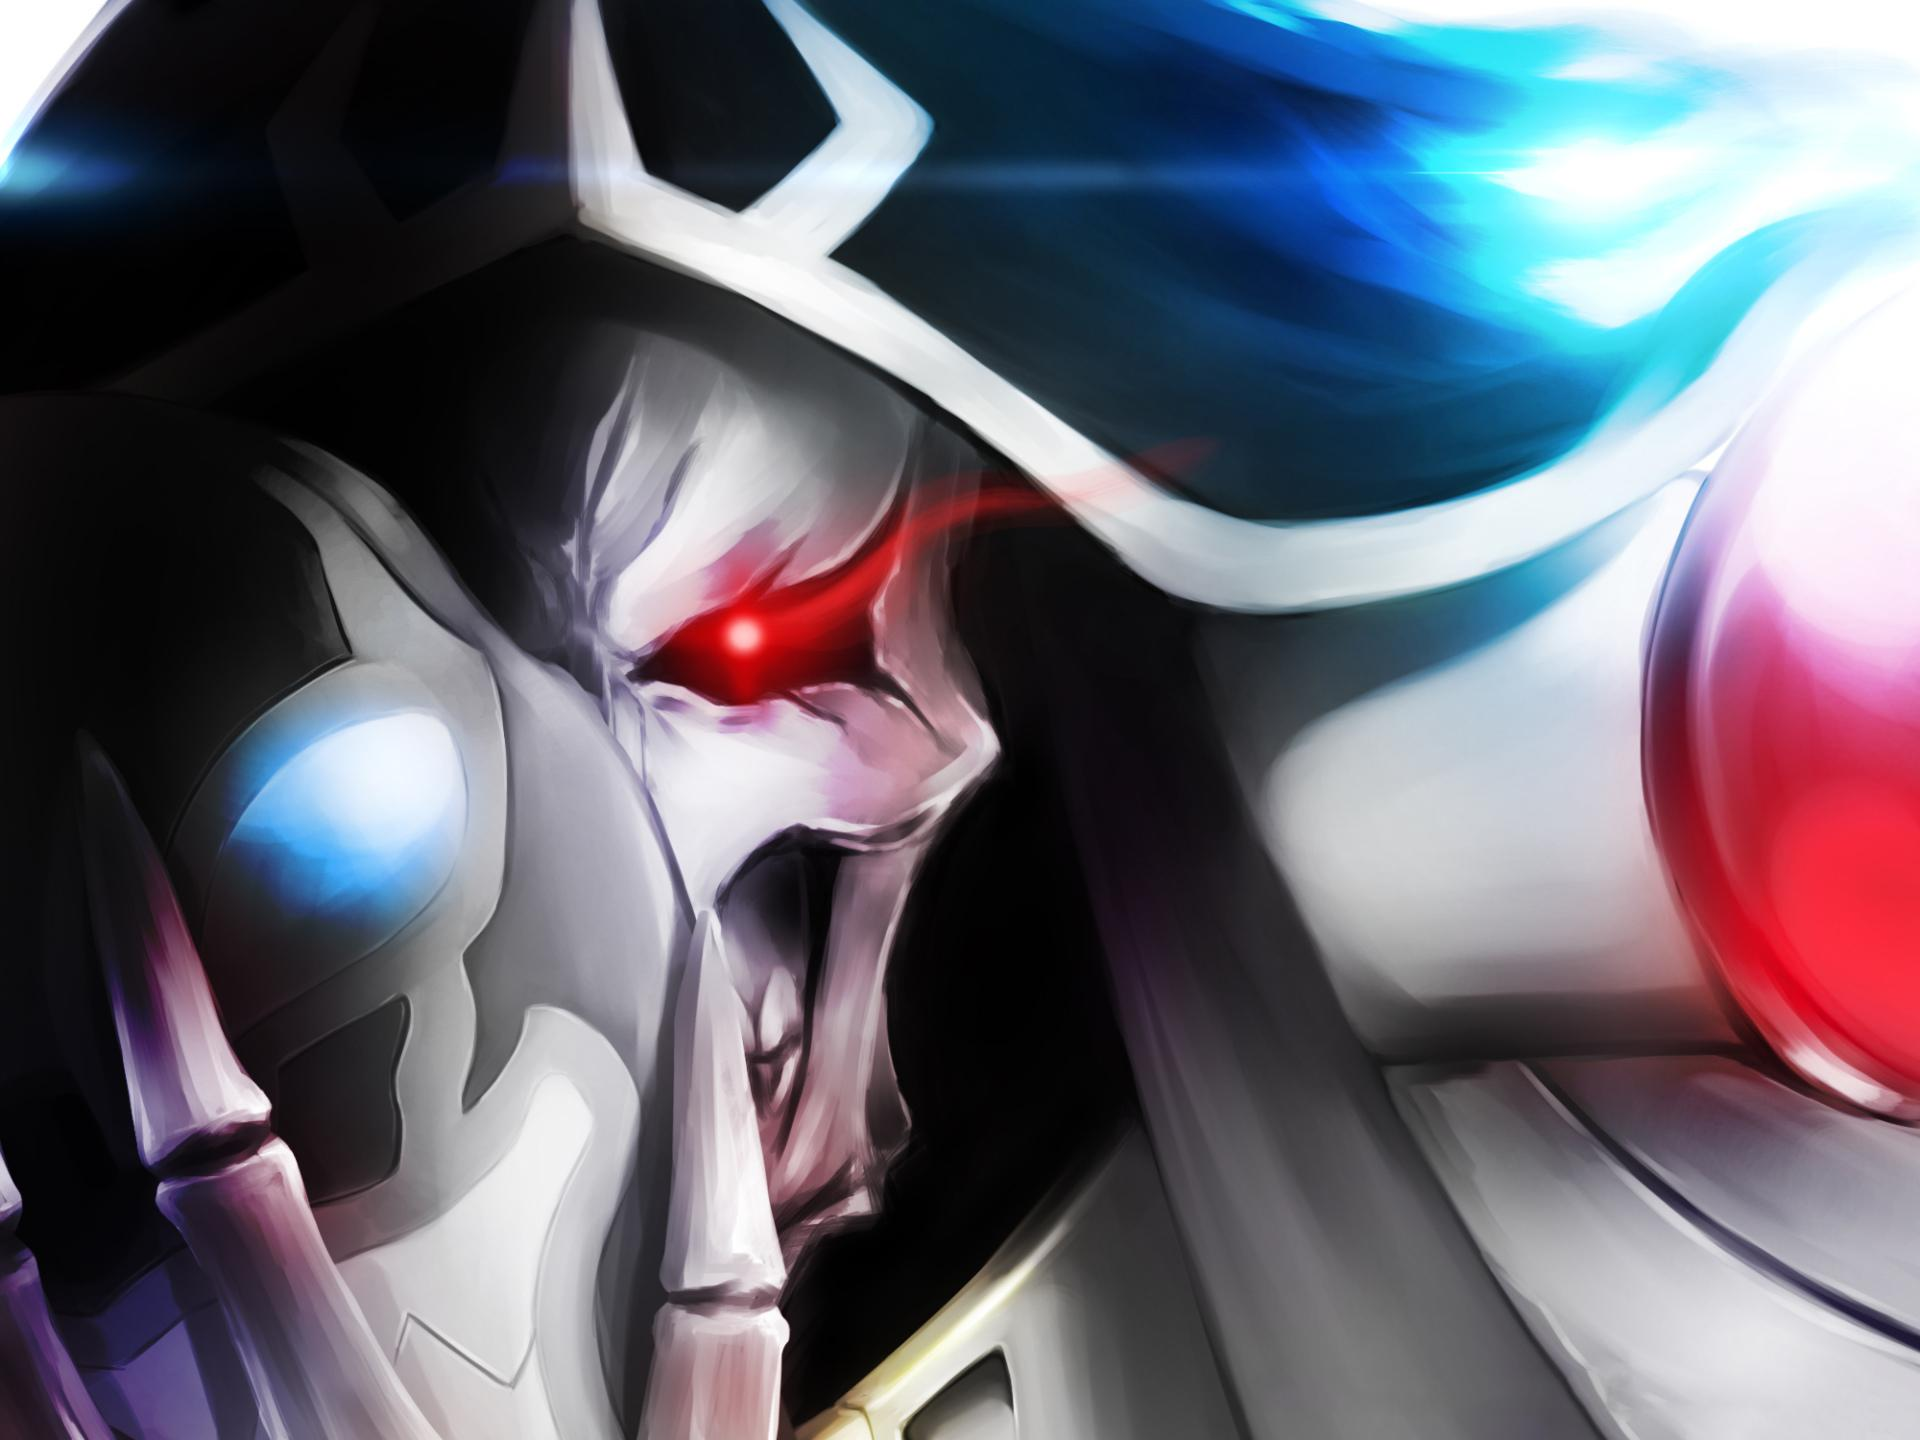 Overlord Anime Wallpaper HD Download